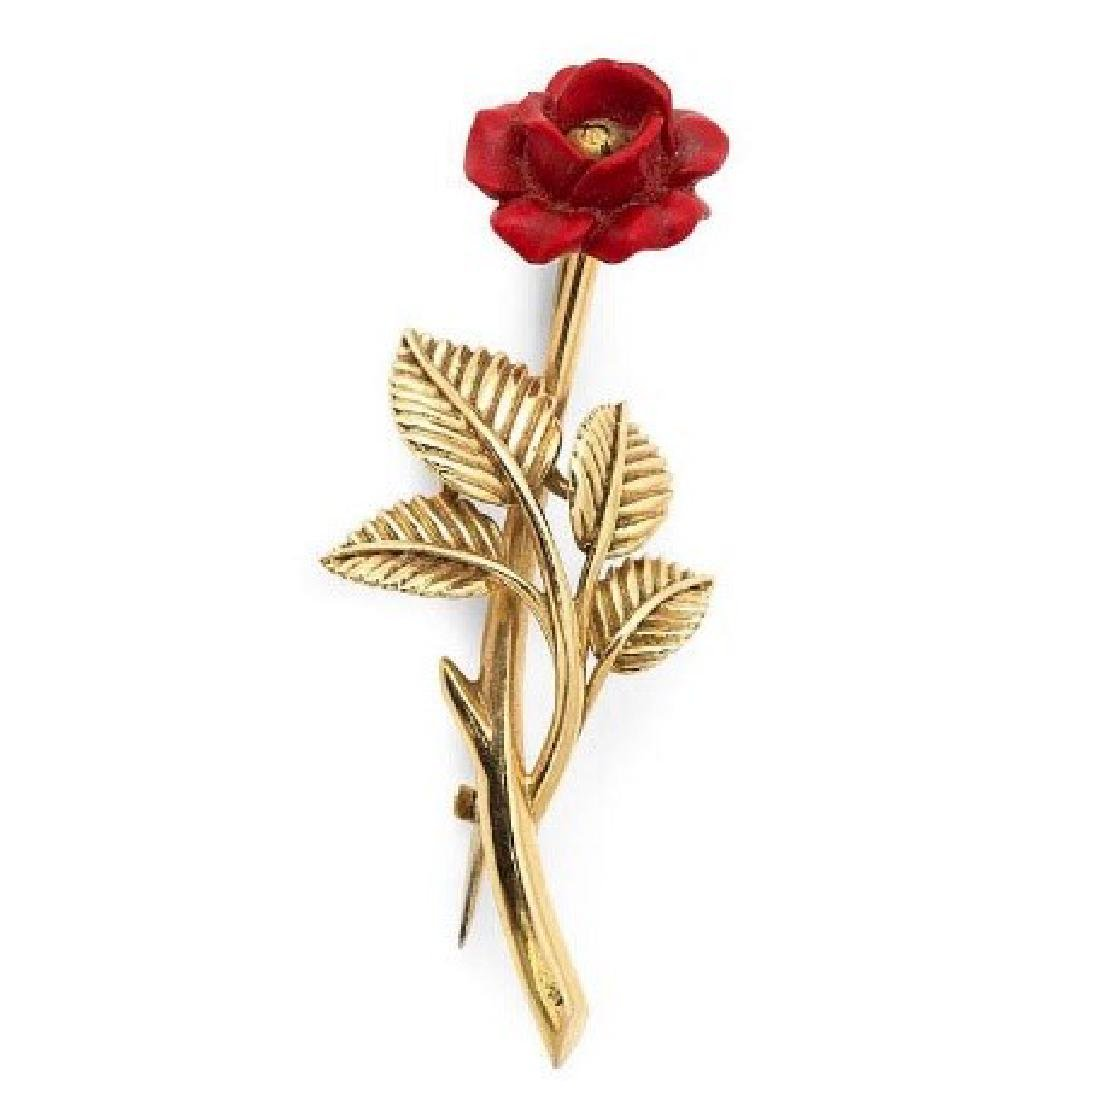 Fred Paris Oxblood Coral Rose Pin